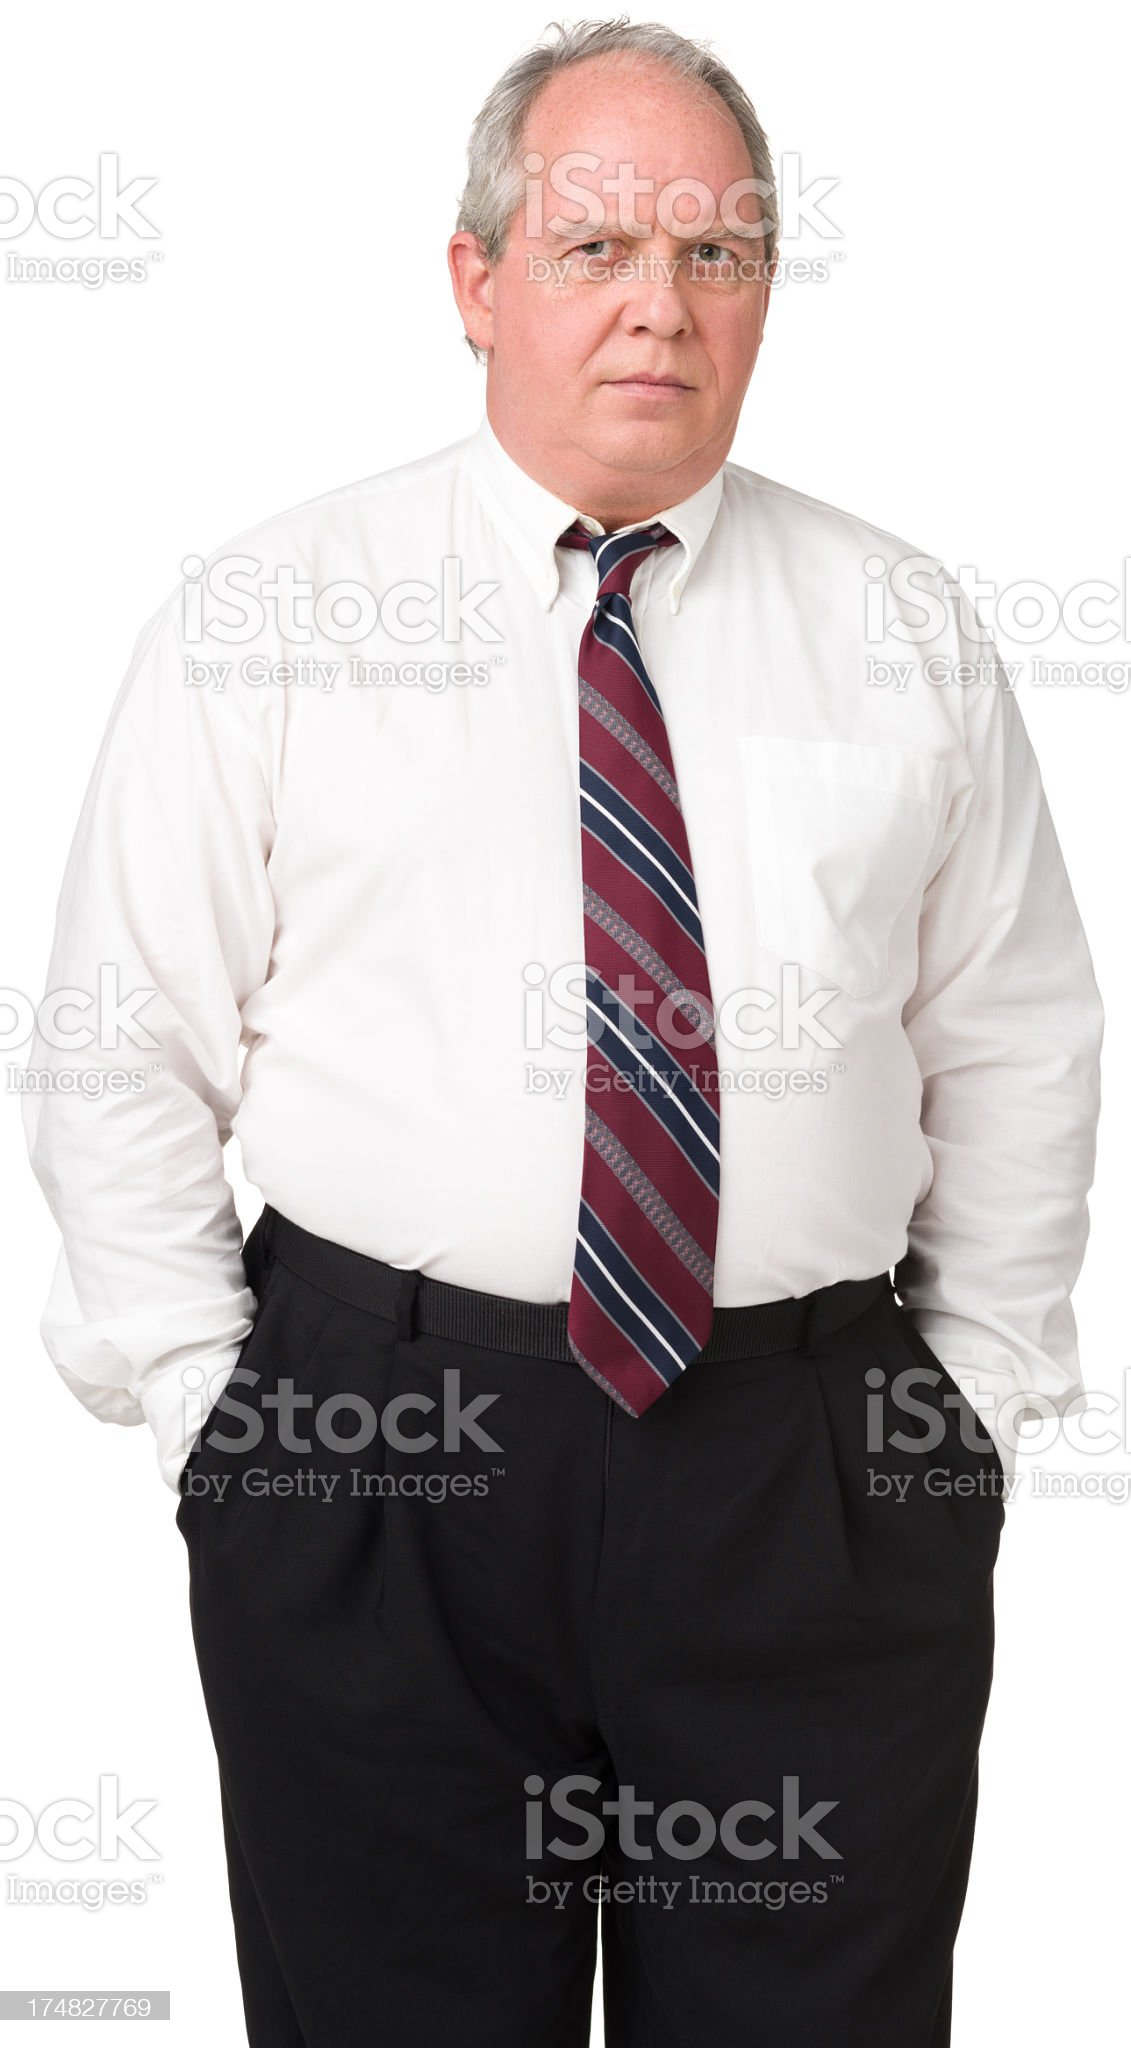 Disappointed Mature Man Office Worker royalty-free stock photo